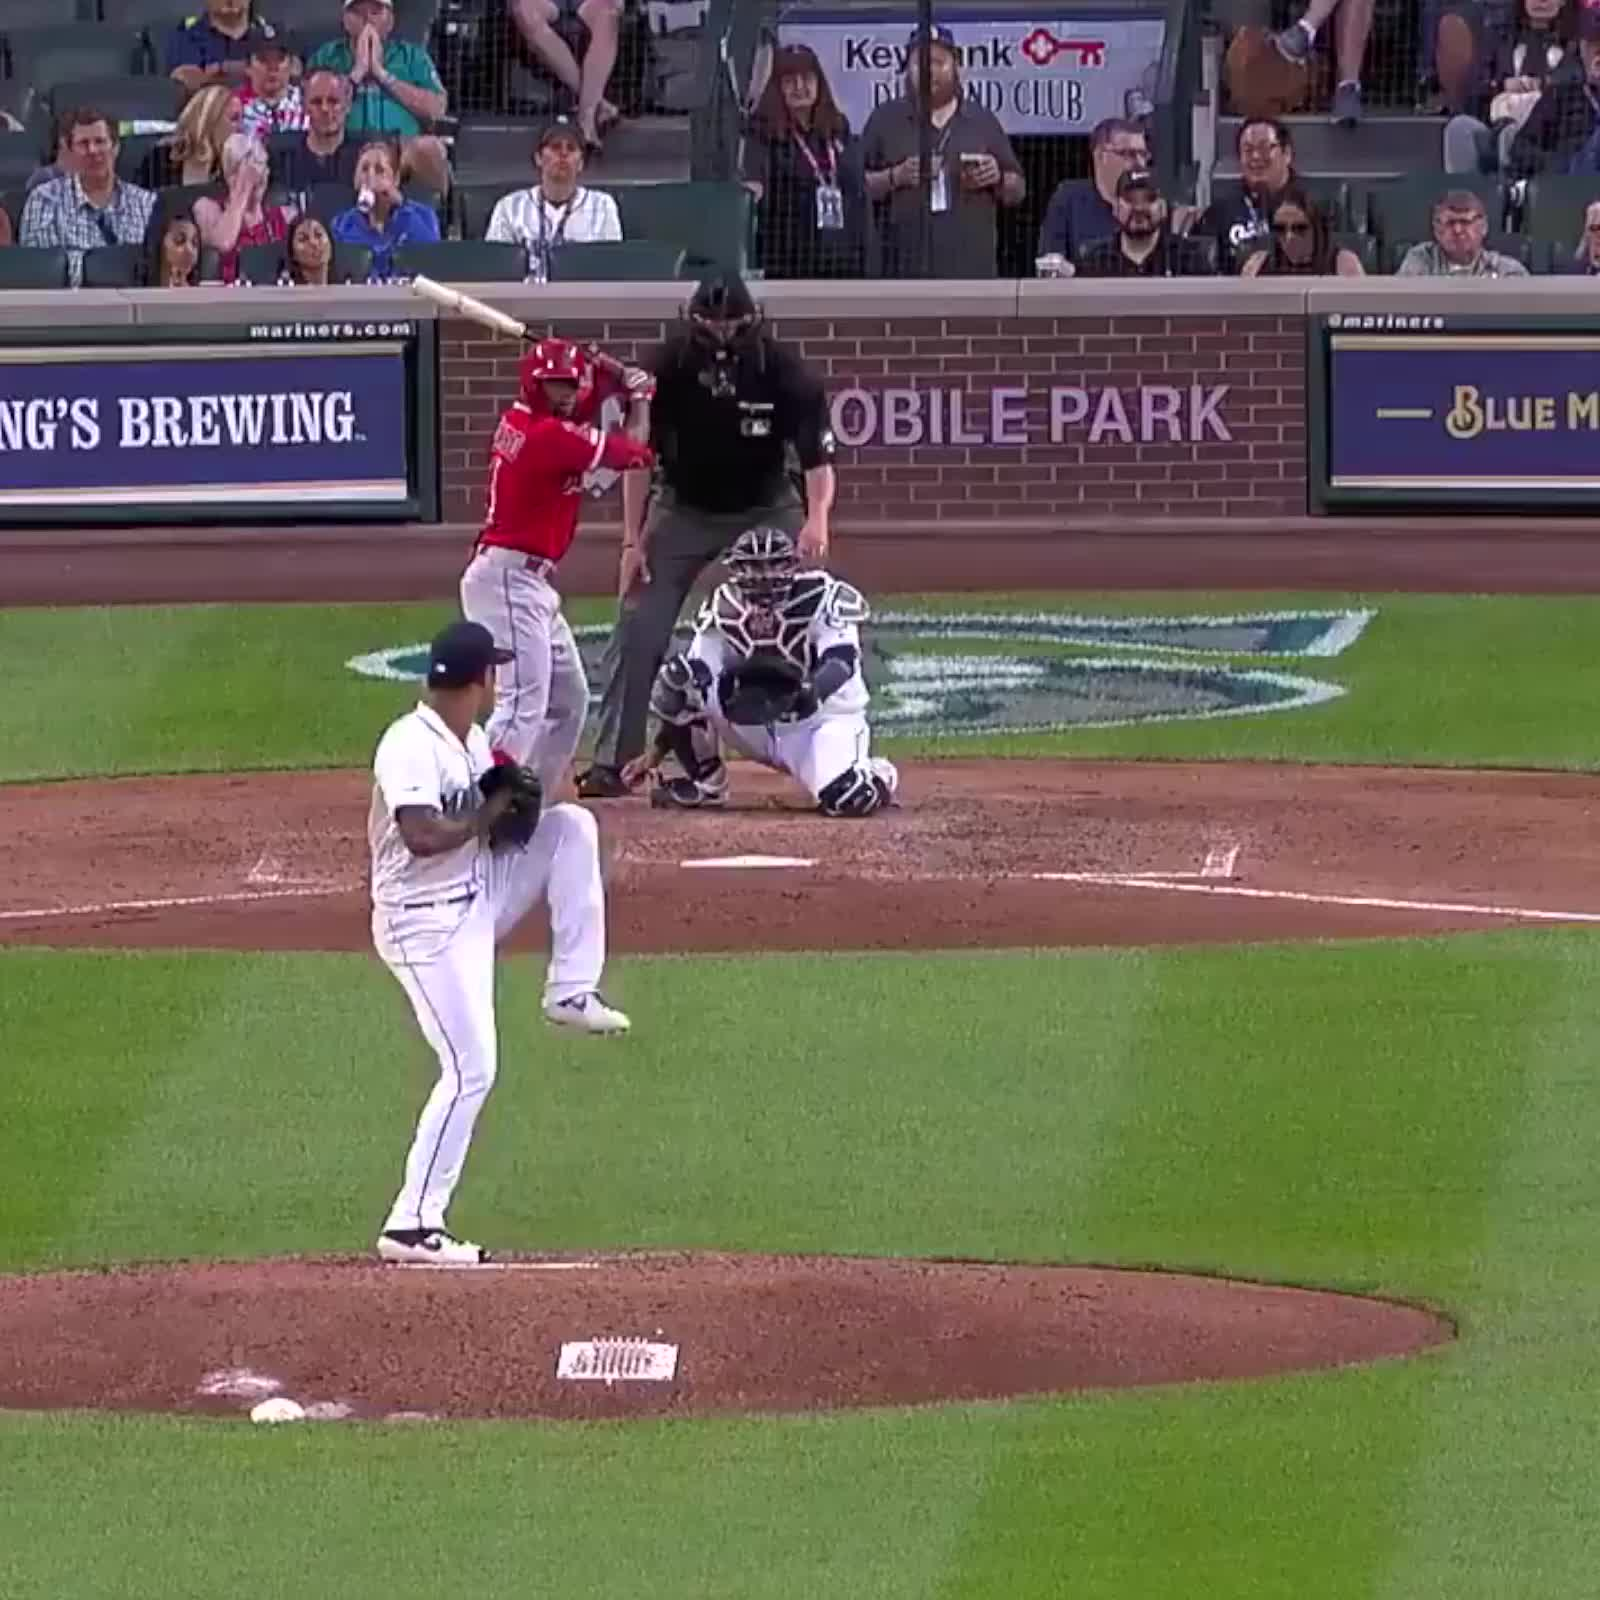 dad snags foul bout while holding his son, mariners, seattle mariners, Dad goals 💯😱 GIFs